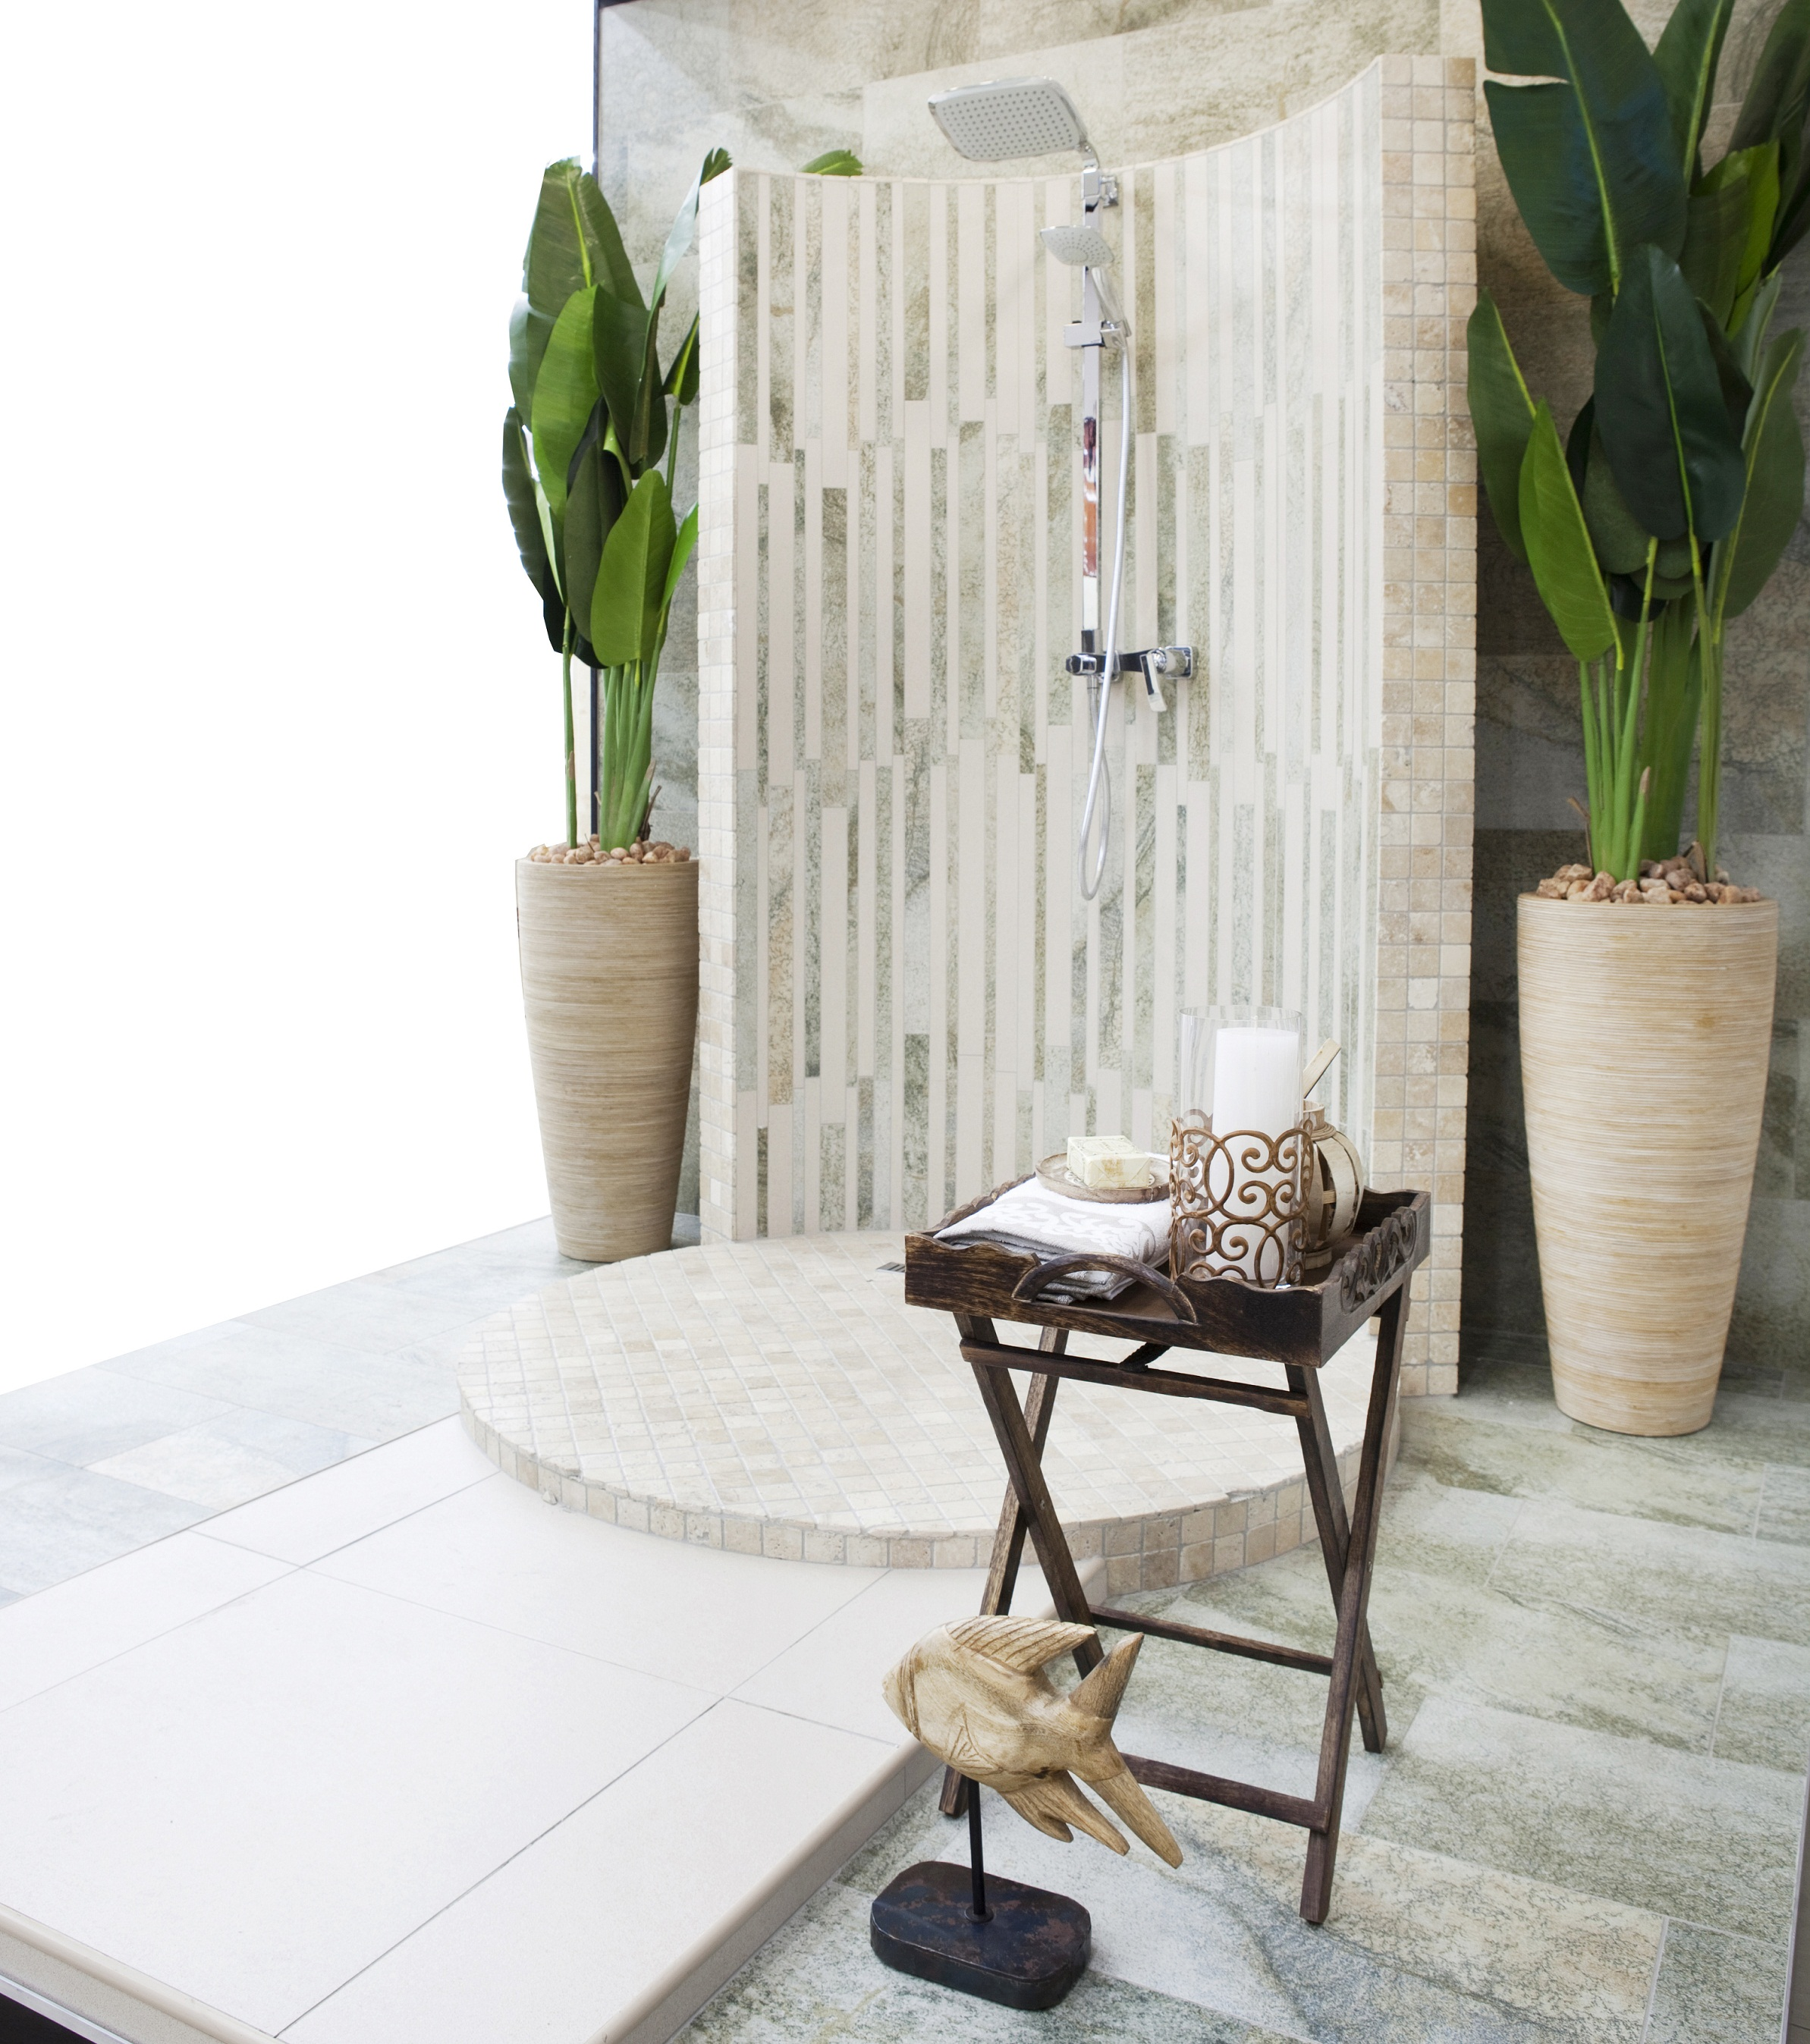 Tile Africa Outdoor Shower pic 2 home gardens